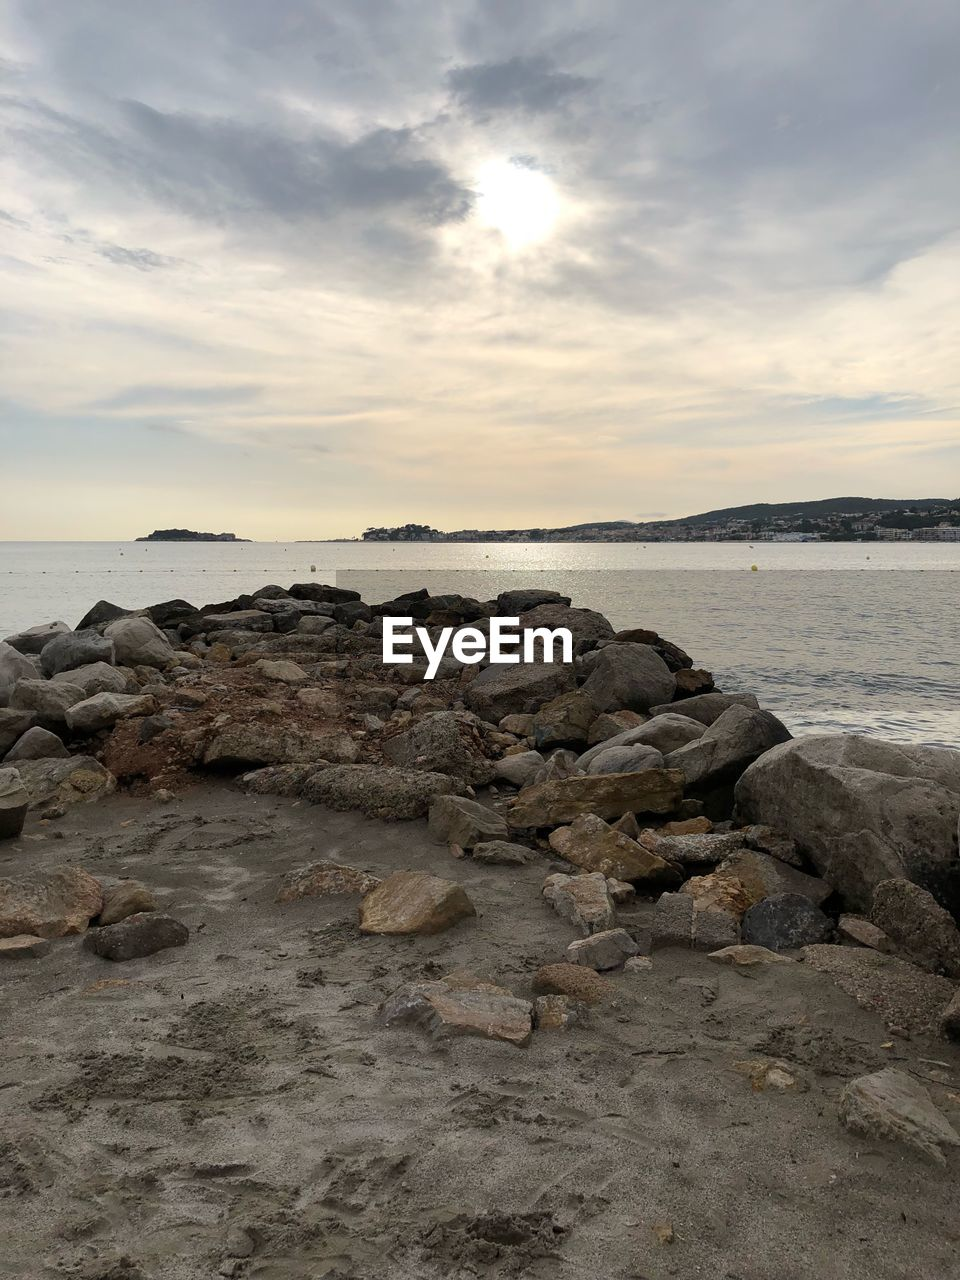 sky, sea, water, cloud - sky, rock, solid, beauty in nature, scenics - nature, sunset, rock - object, land, tranquility, beach, tranquil scene, nature, horizon, no people, horizon over water, non-urban scene, outdoors, rocky coastline